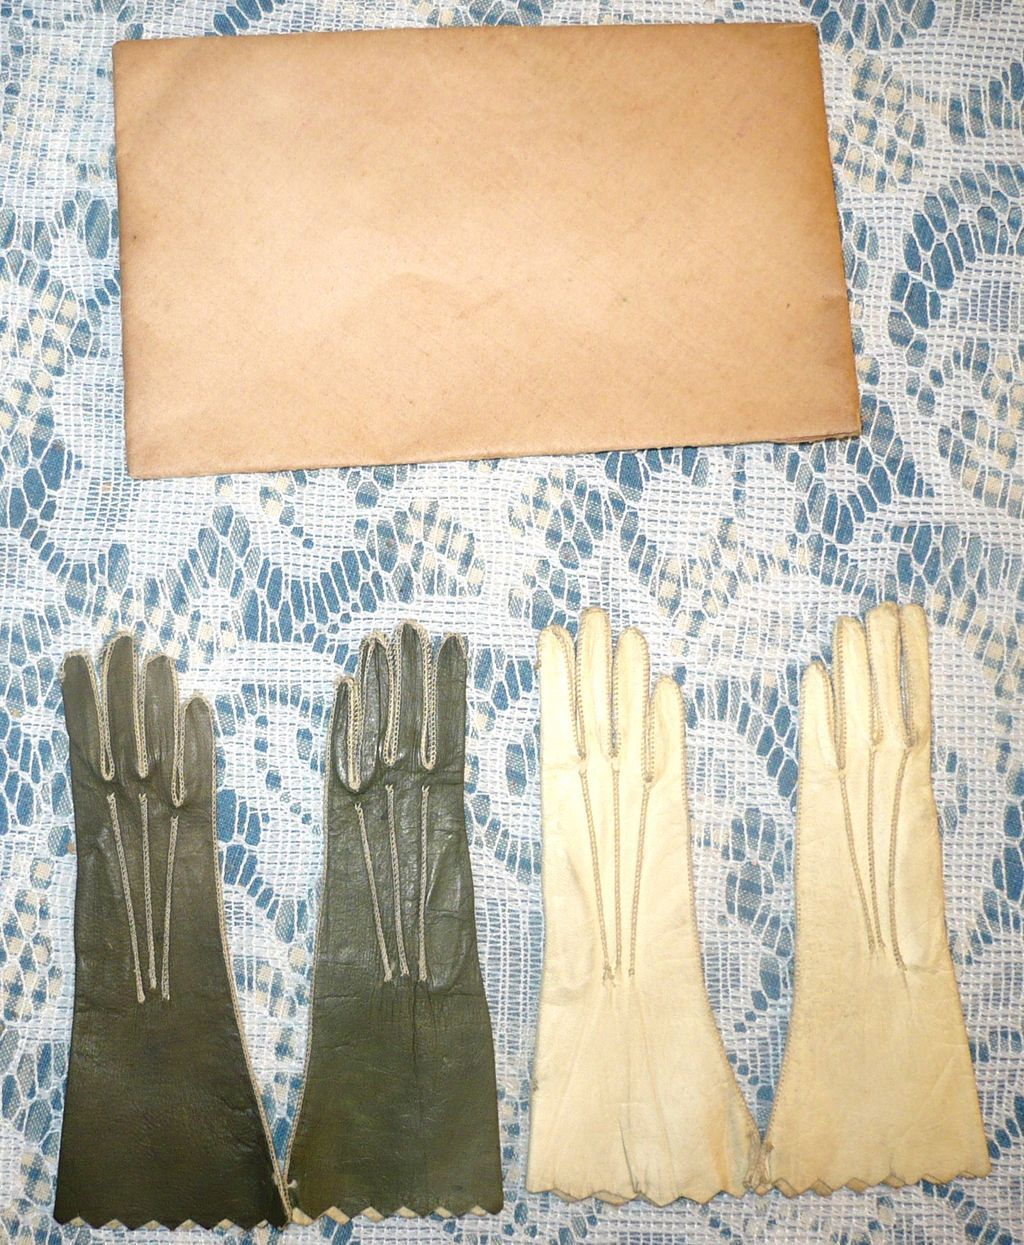 2 Pair Glazed Kid French Fashion Gloves Cream & Olive Original Folder